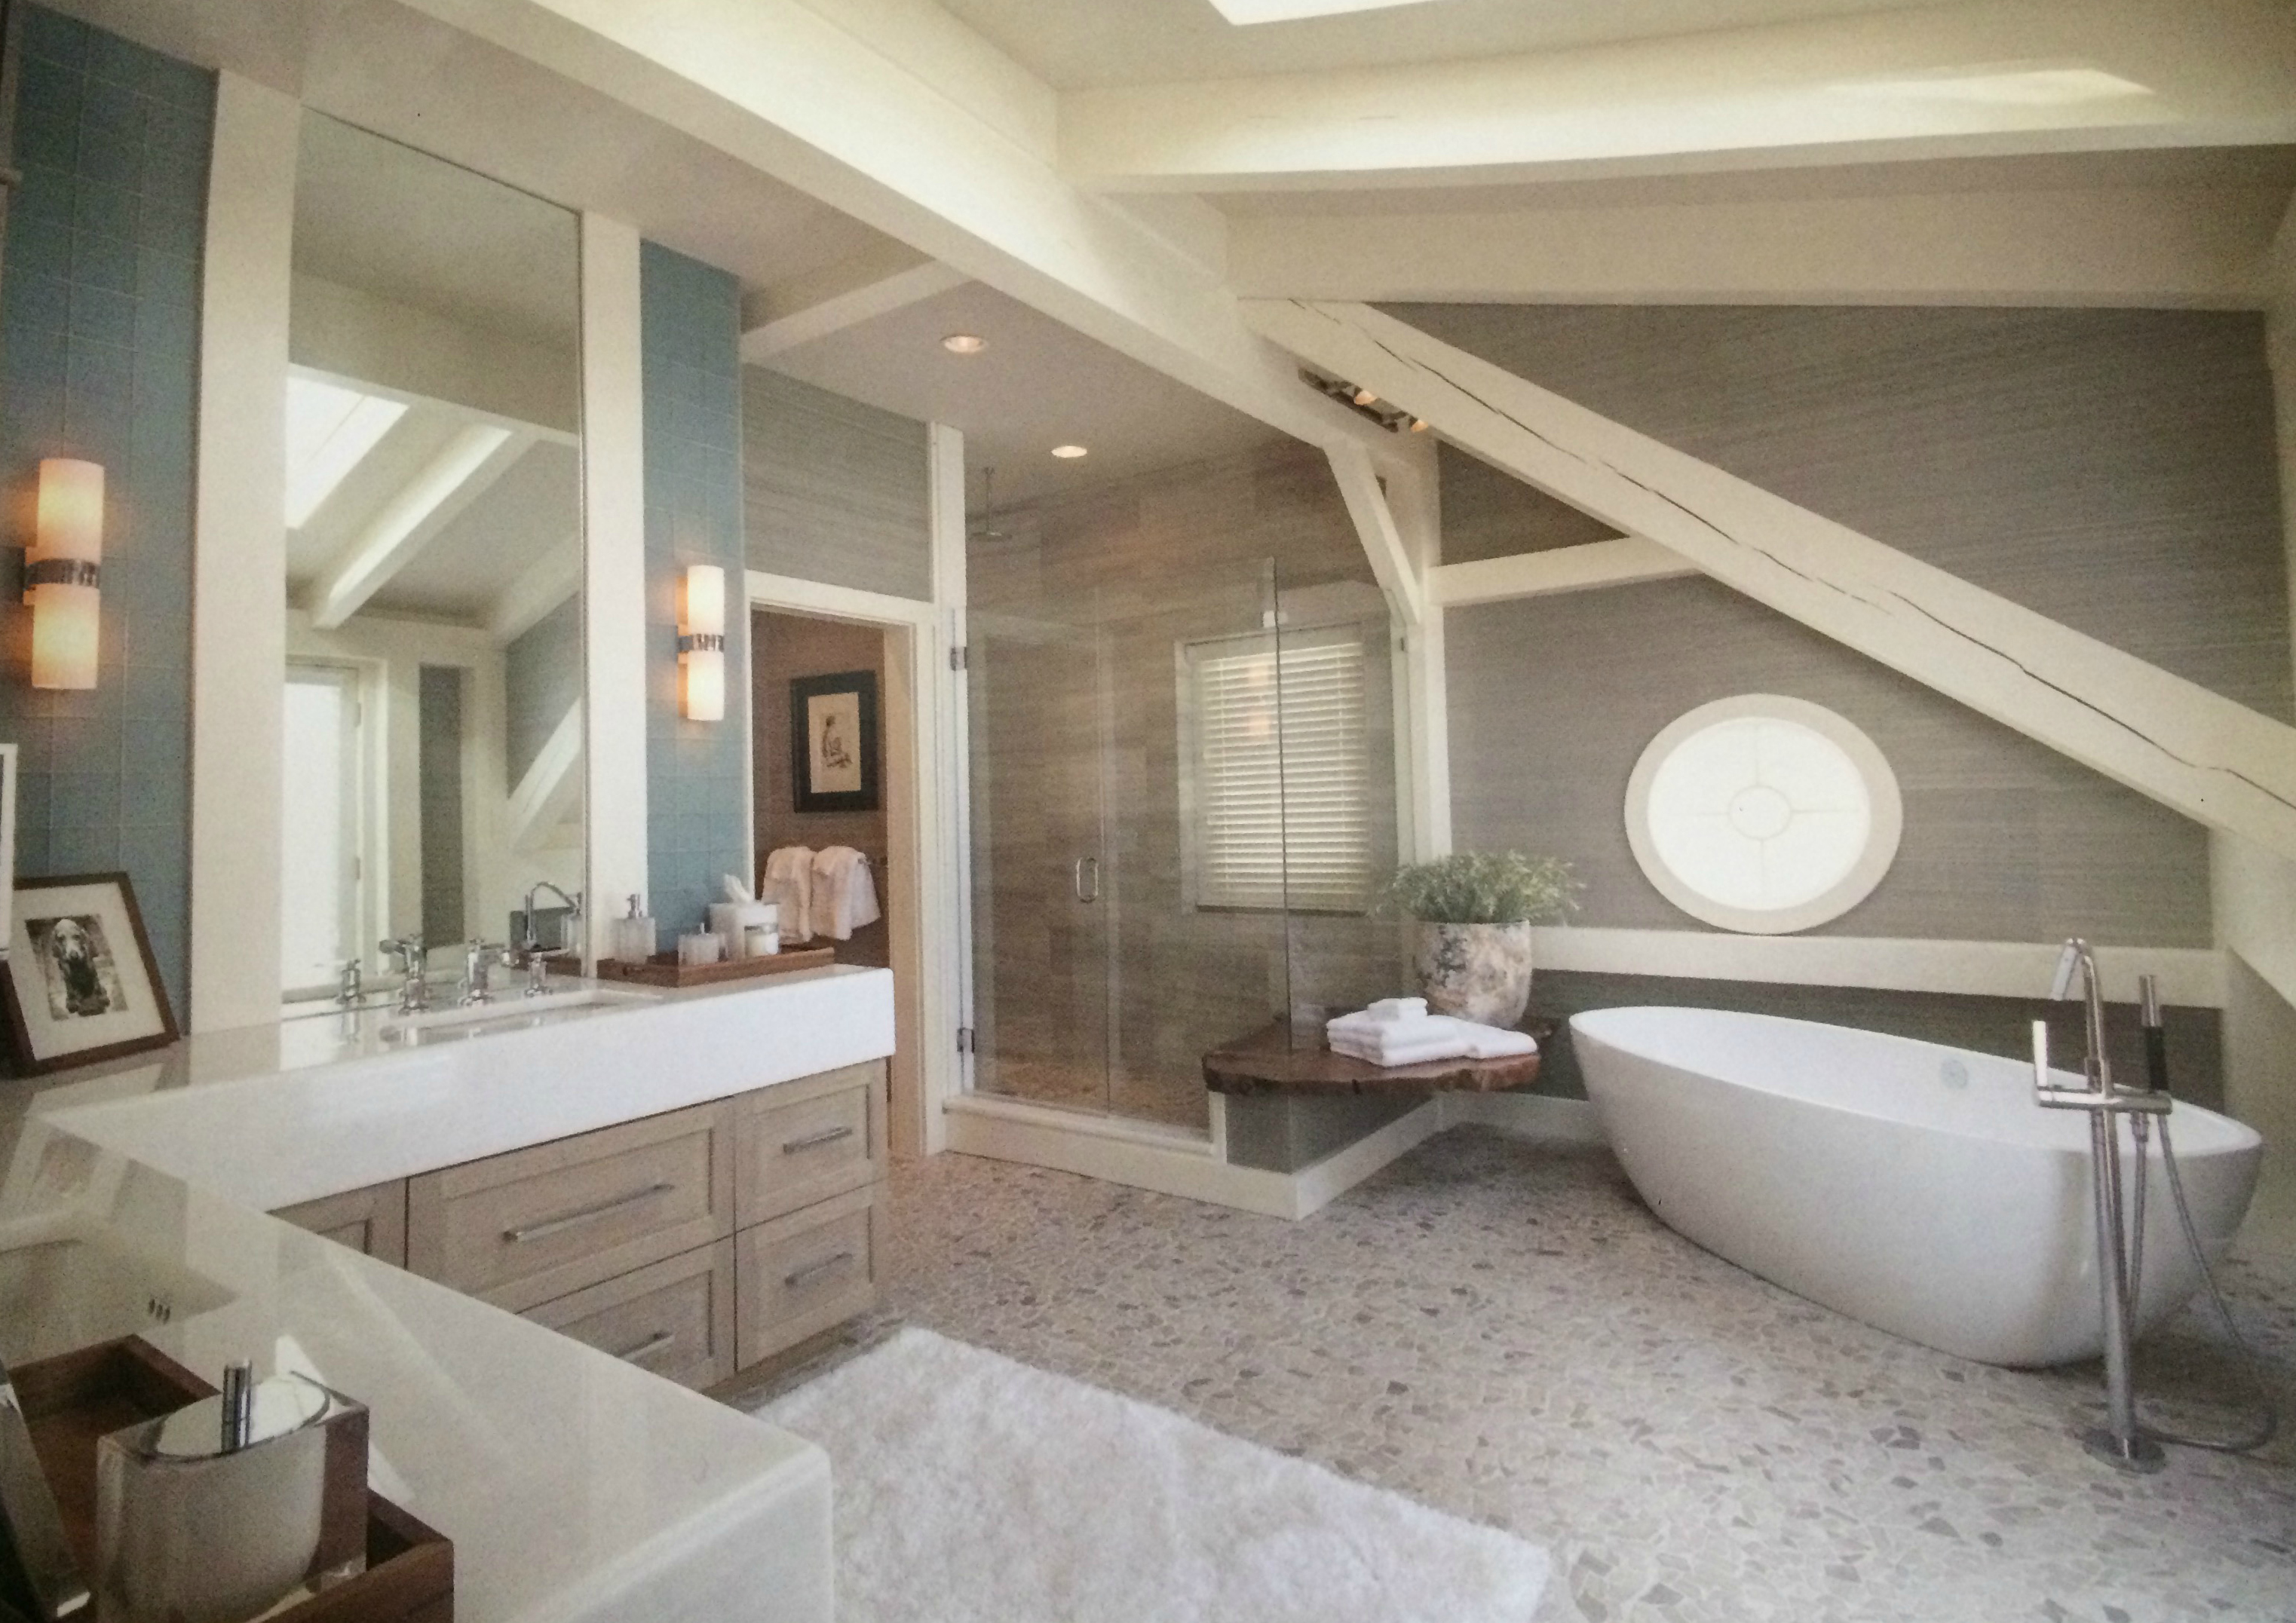 Featured Kountry Kraft Bath